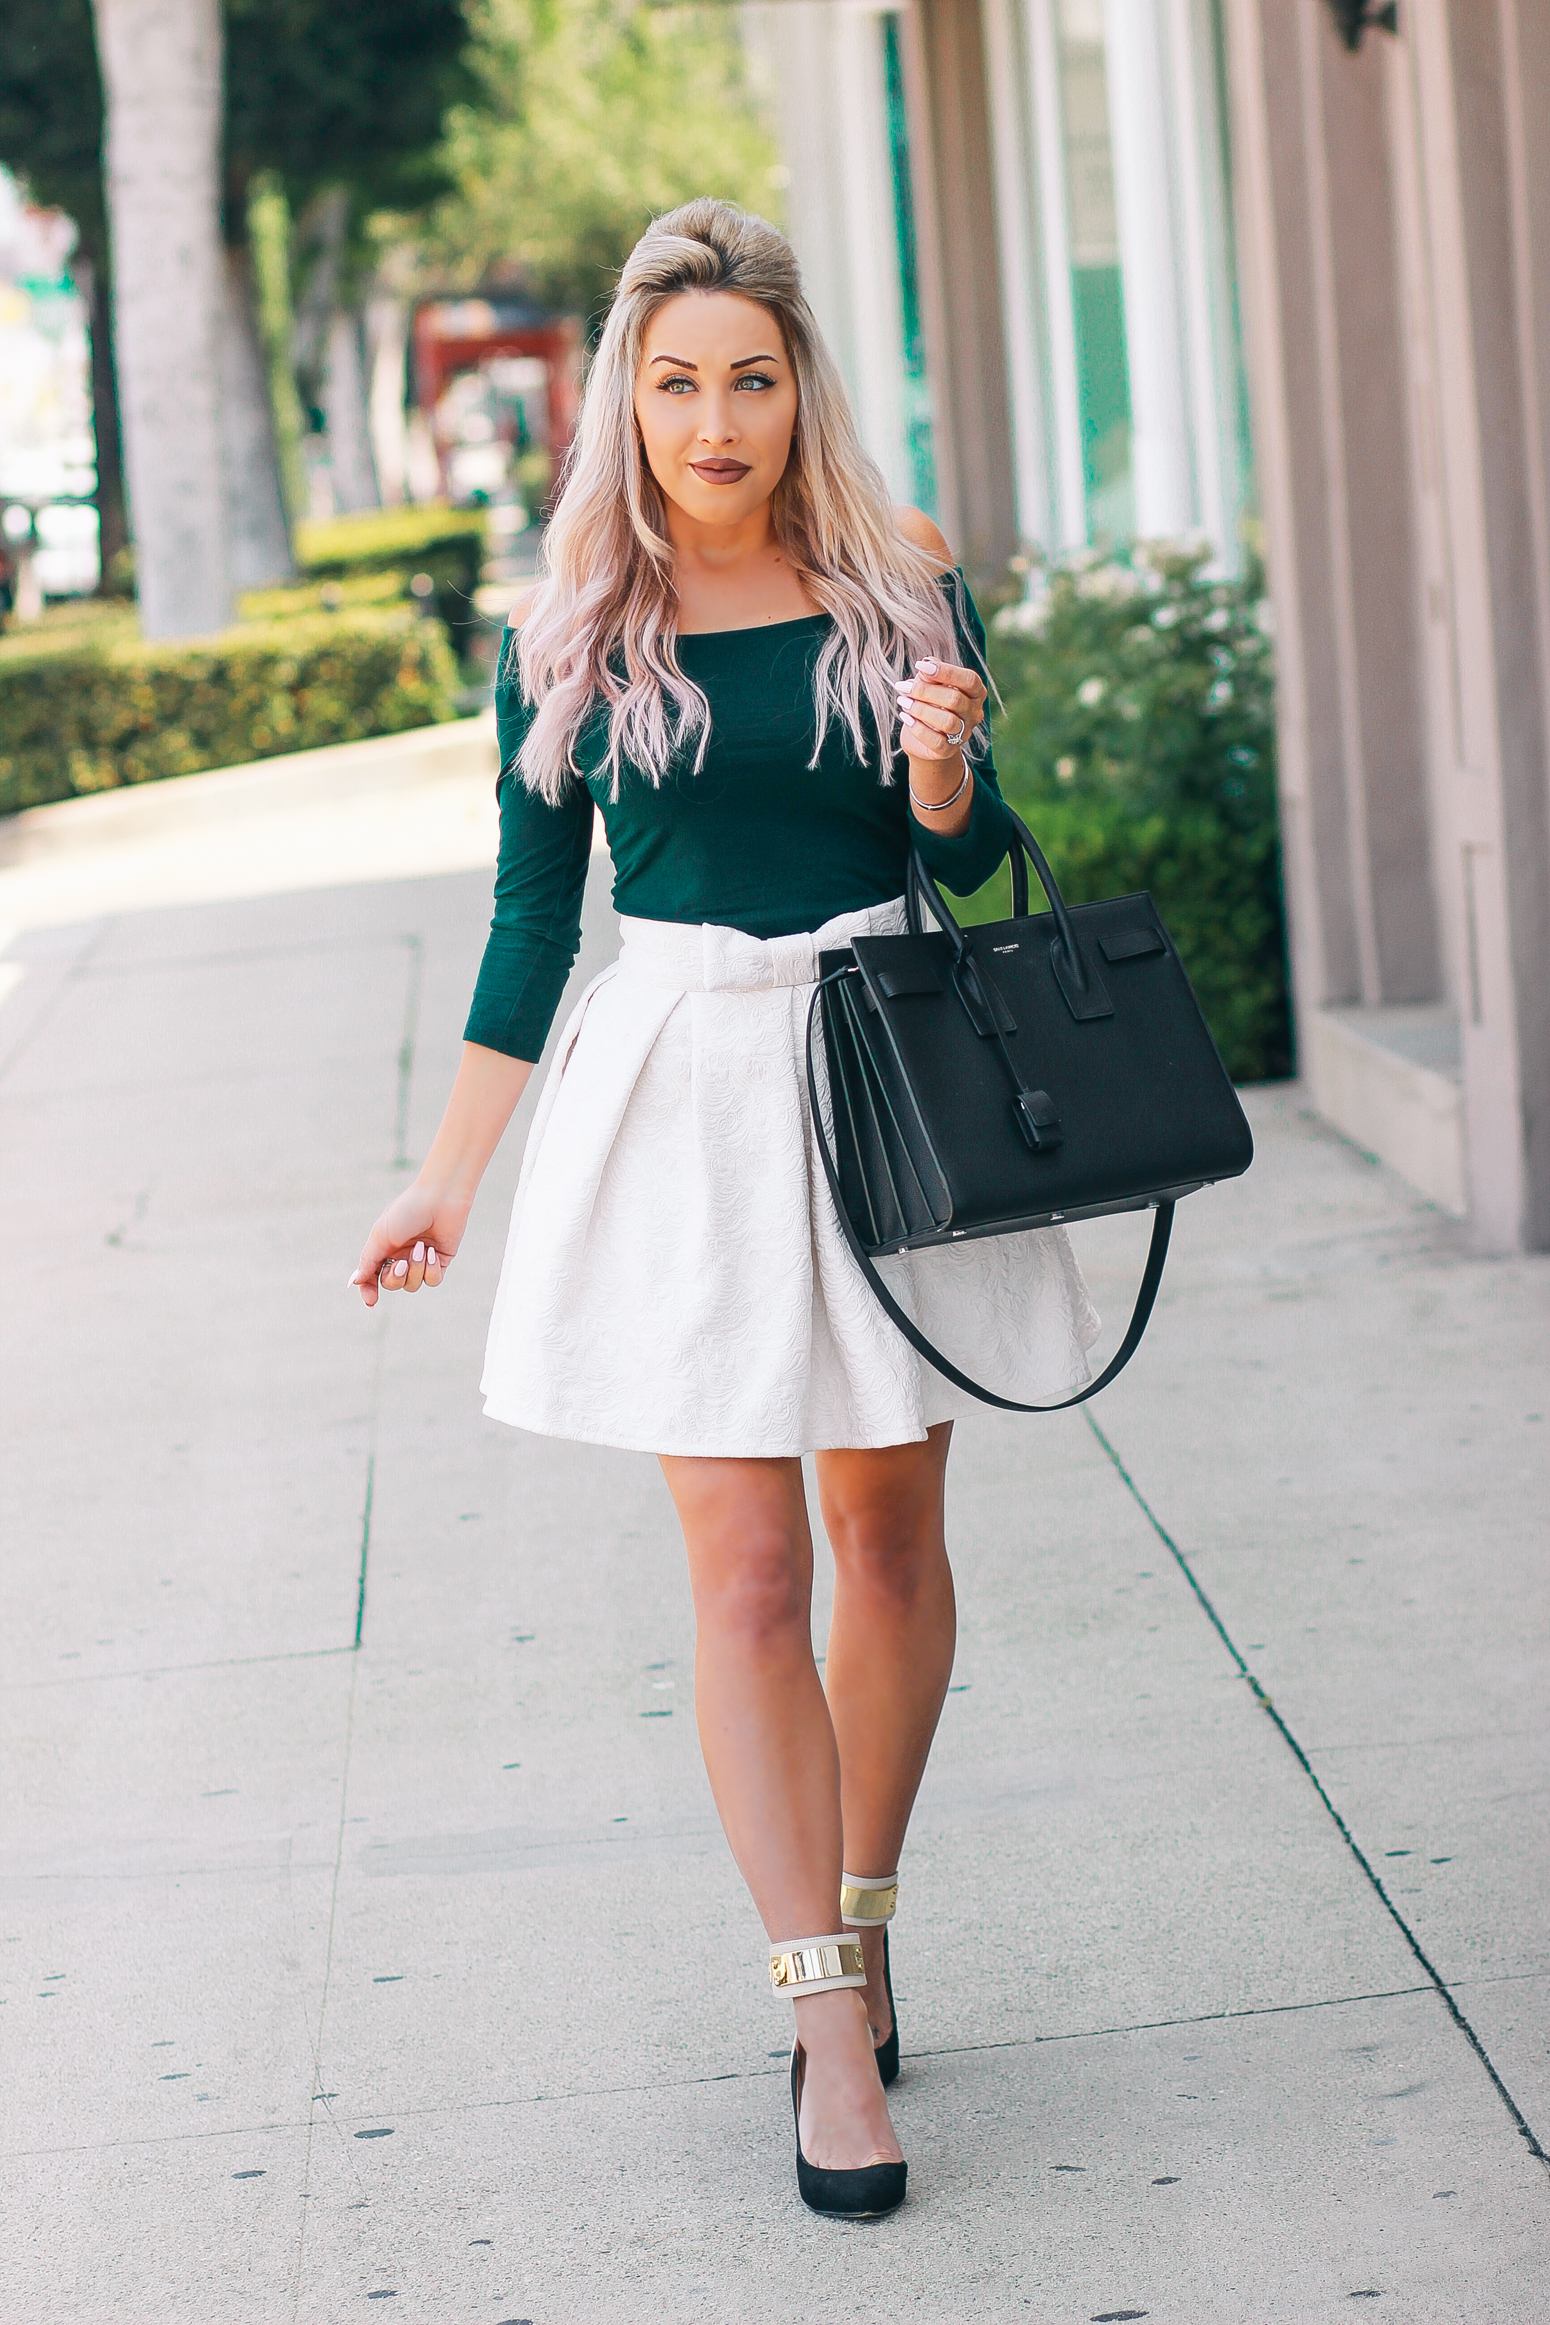 Blondie in the City | Forest Green & Ivory Lace | Chic Street Style Fashion